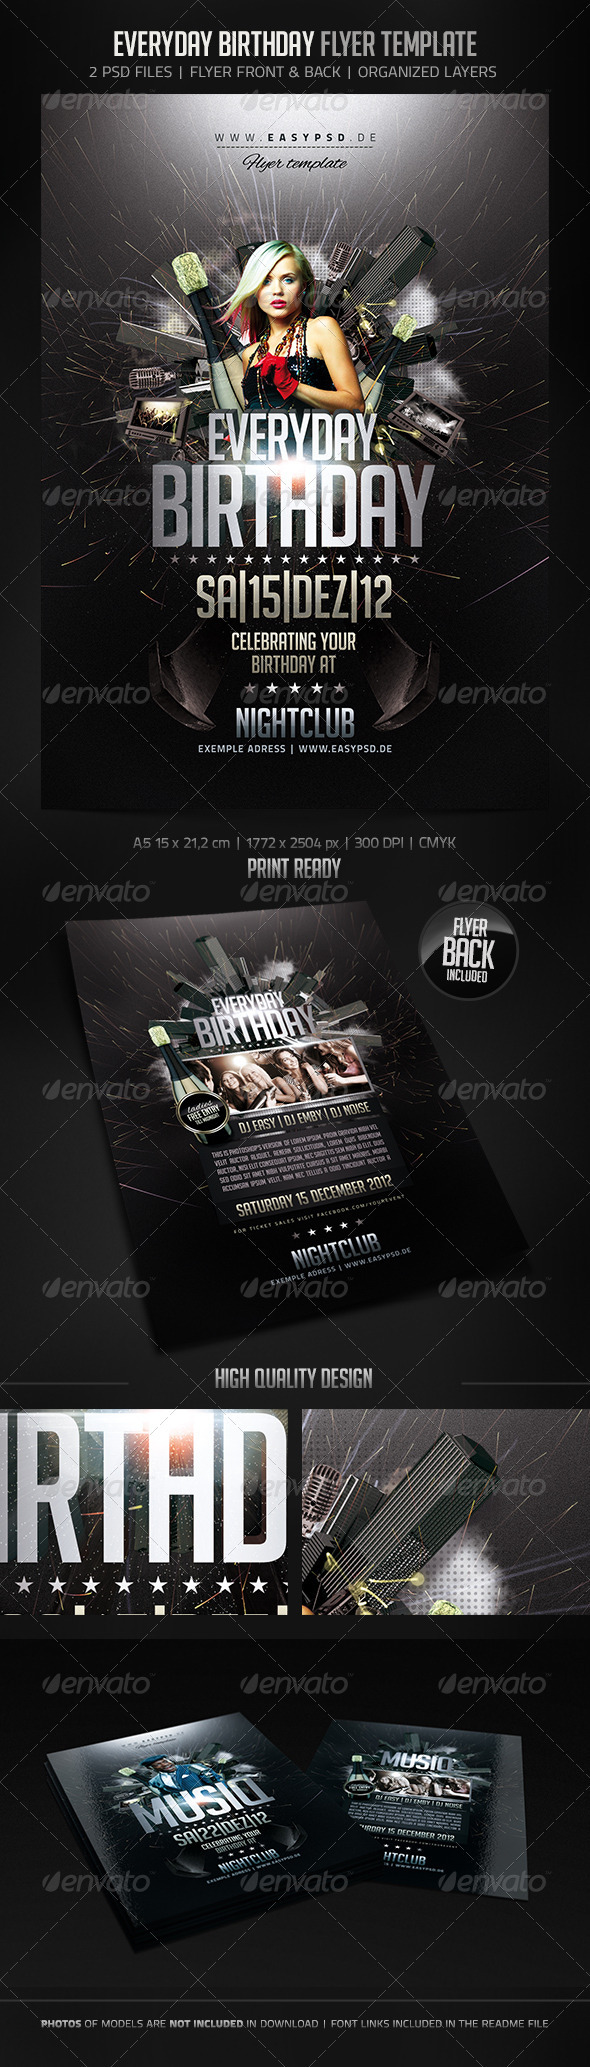 GraphicRiver Everyday Birthday Flyer 3550179